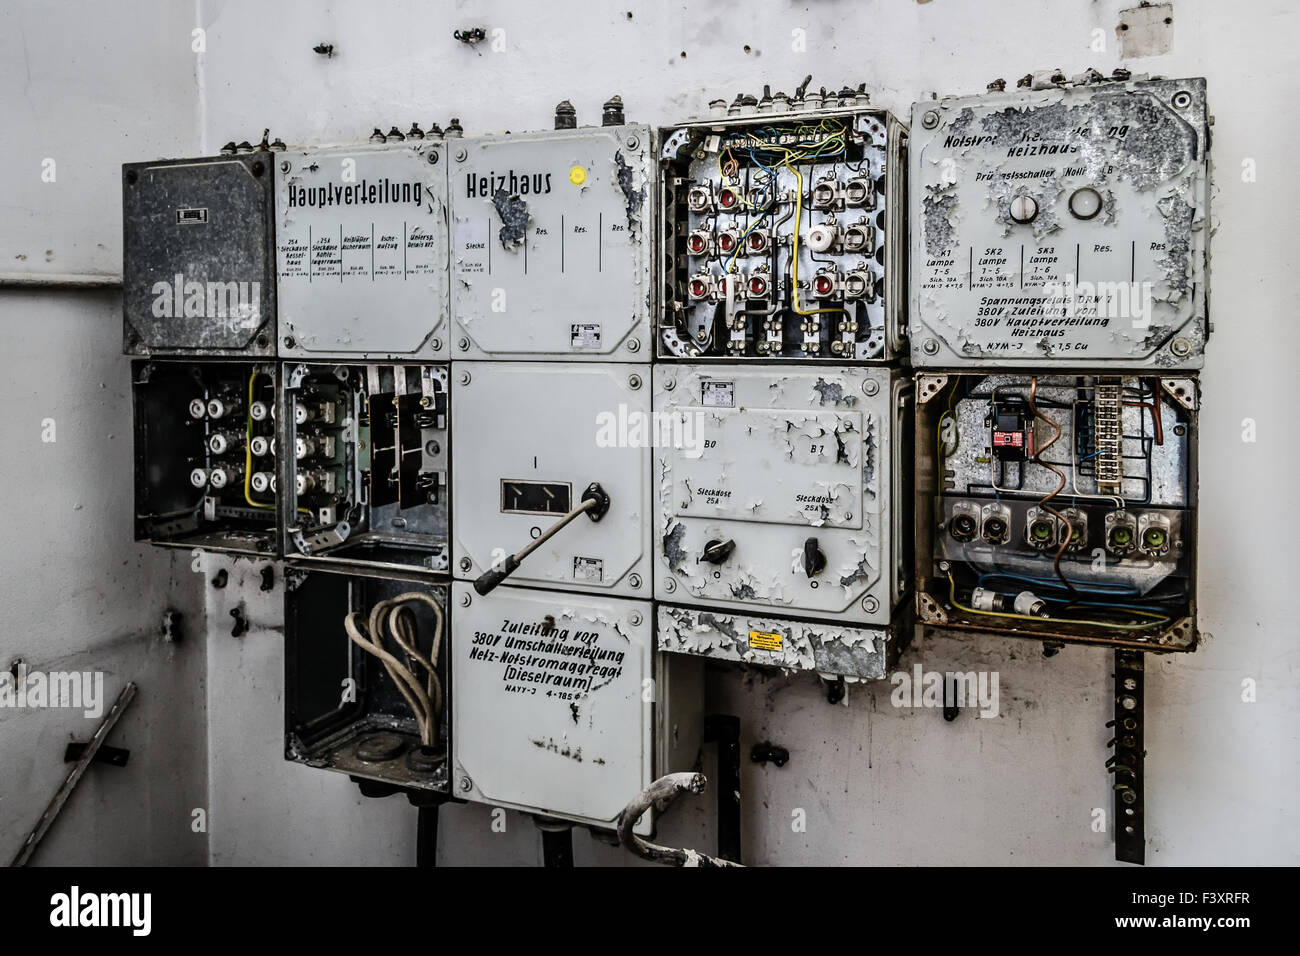 old fuse box F3XRFR old fuse box stock photo, royalty free image 88485035 alamy old fuse box reset at edmiracle.co